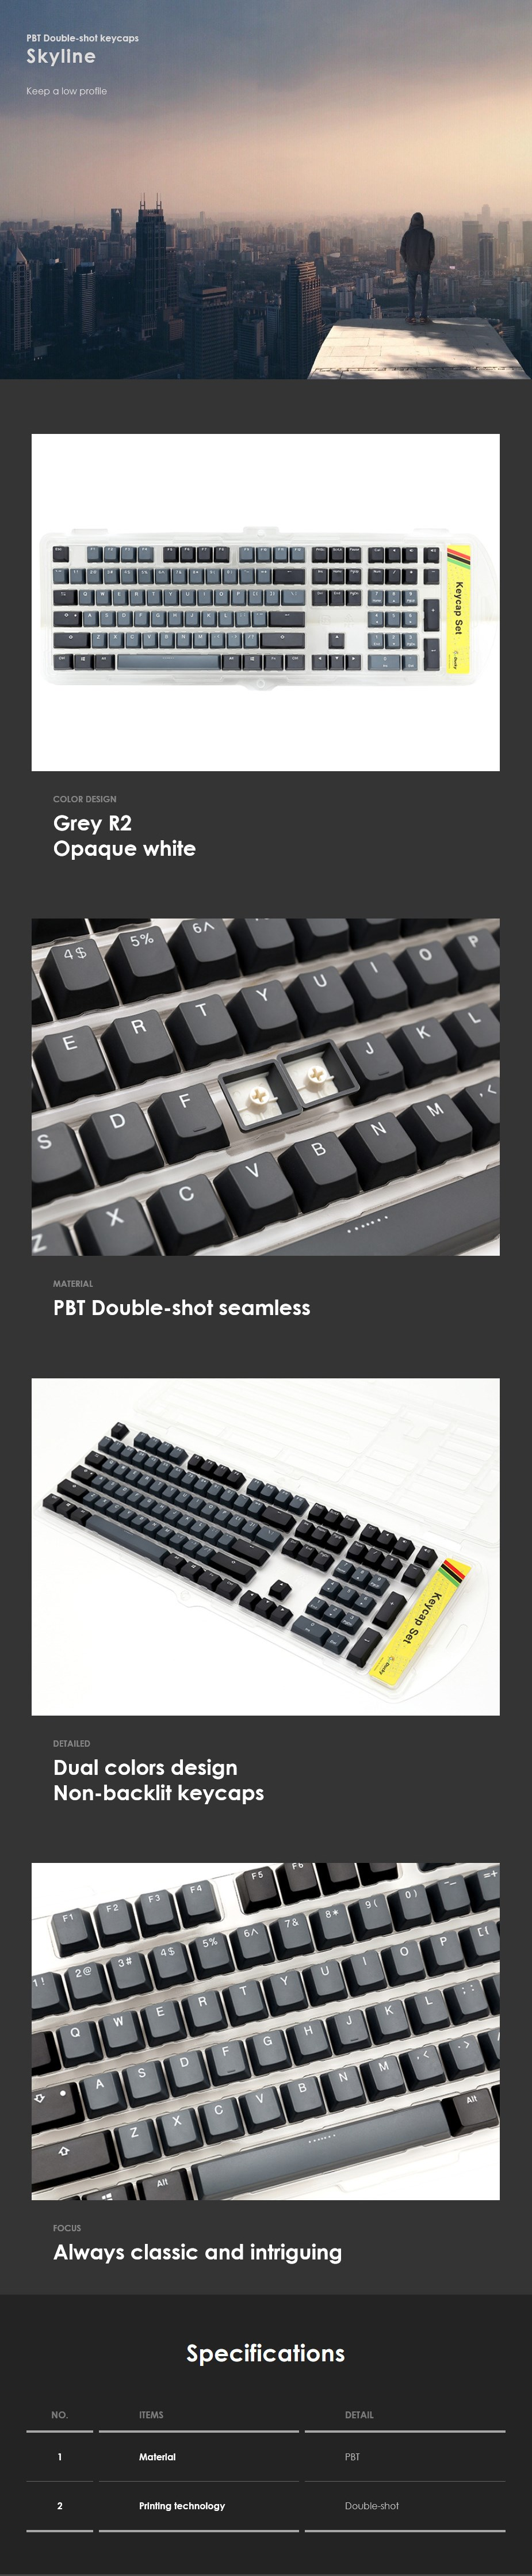 Ducky PBT Doubleshot 108-Key Keycap Set - Skyline - Overview 1